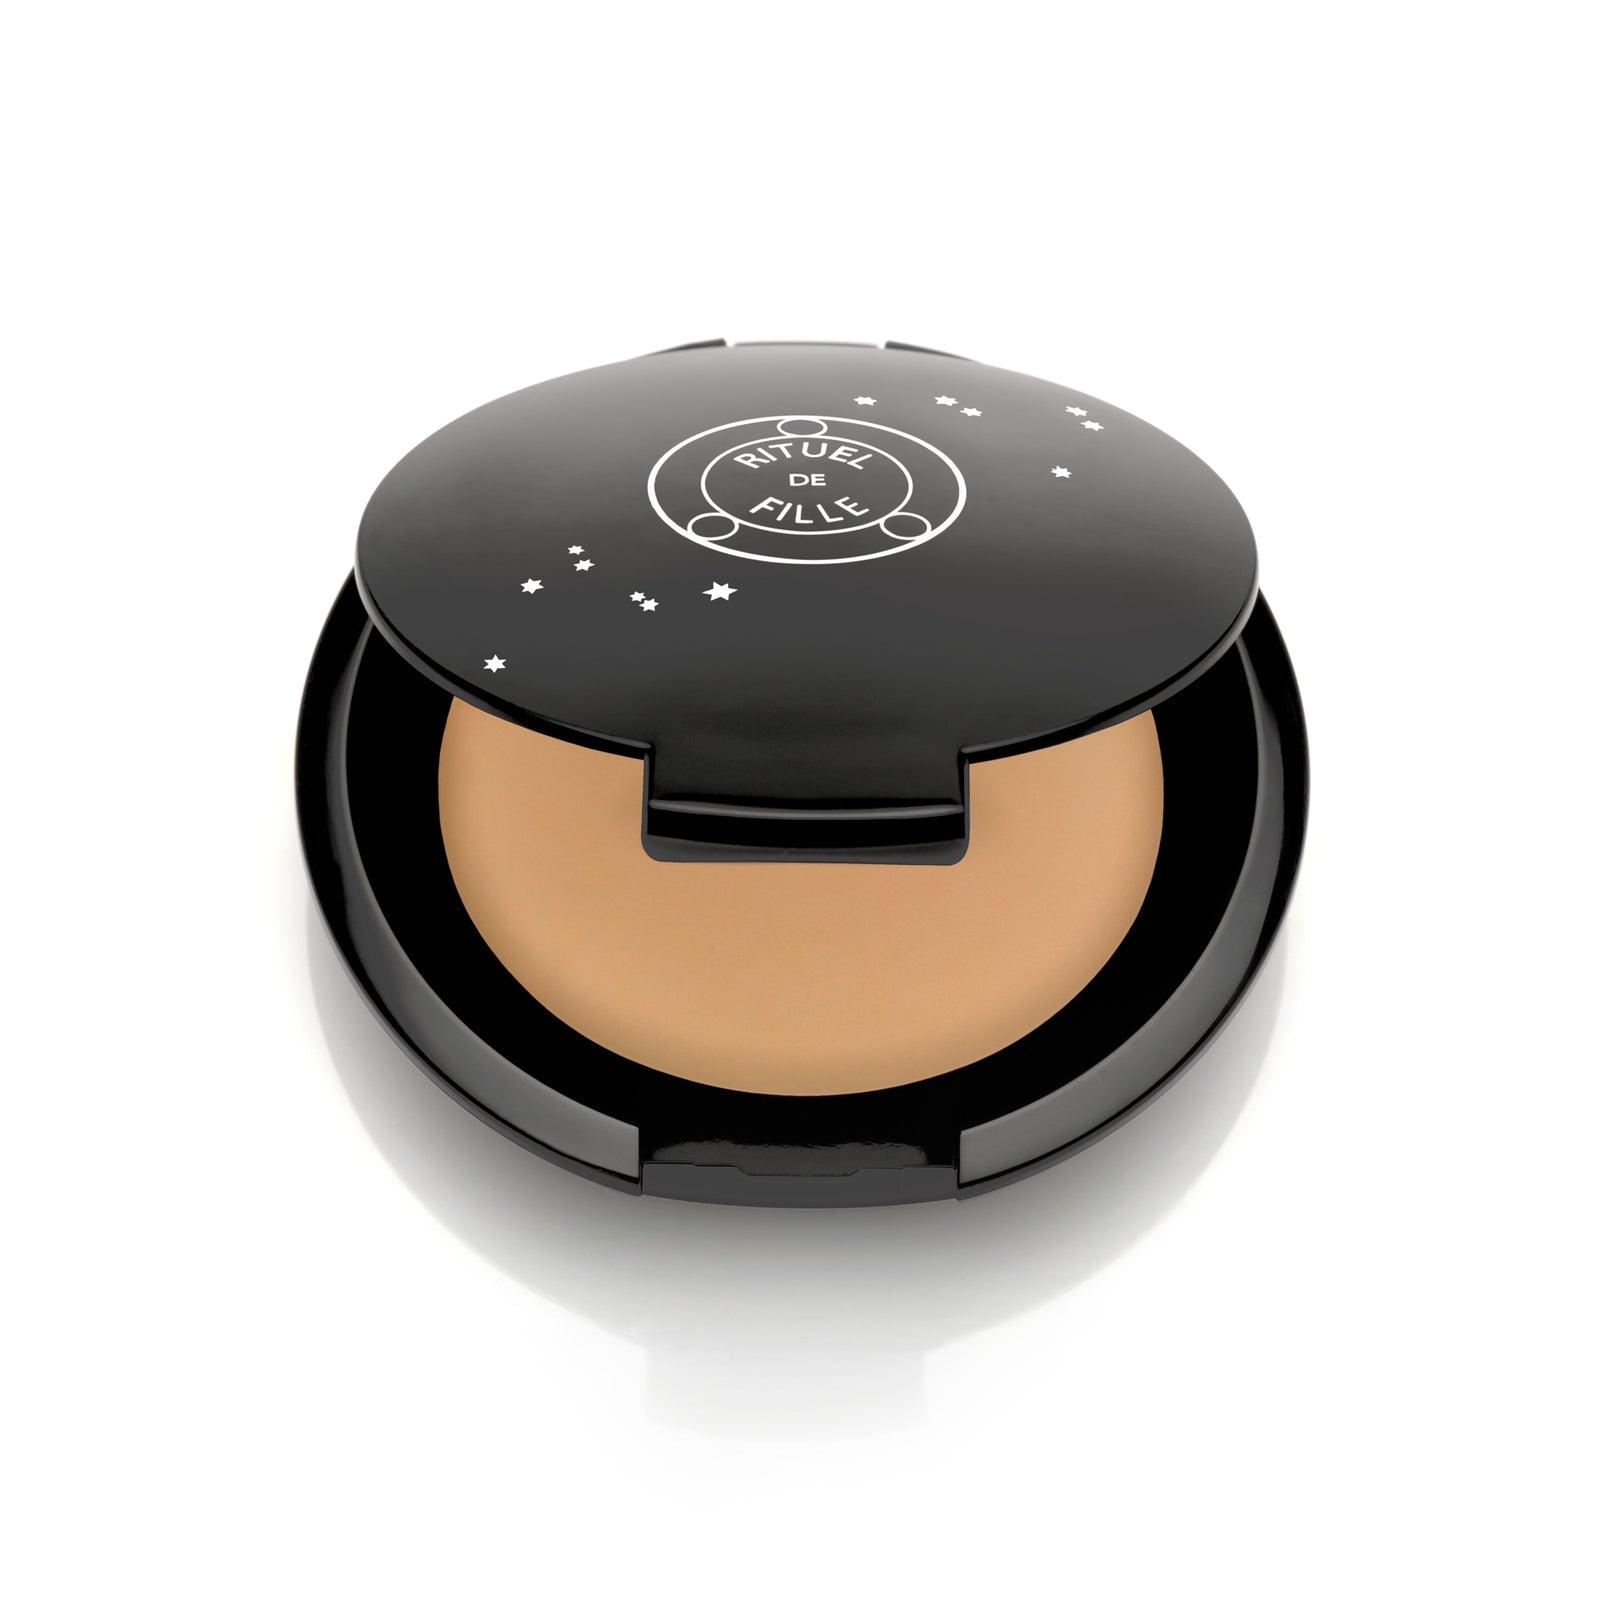 Metis The Ethereal Veil Conceal and Cover natural concealer